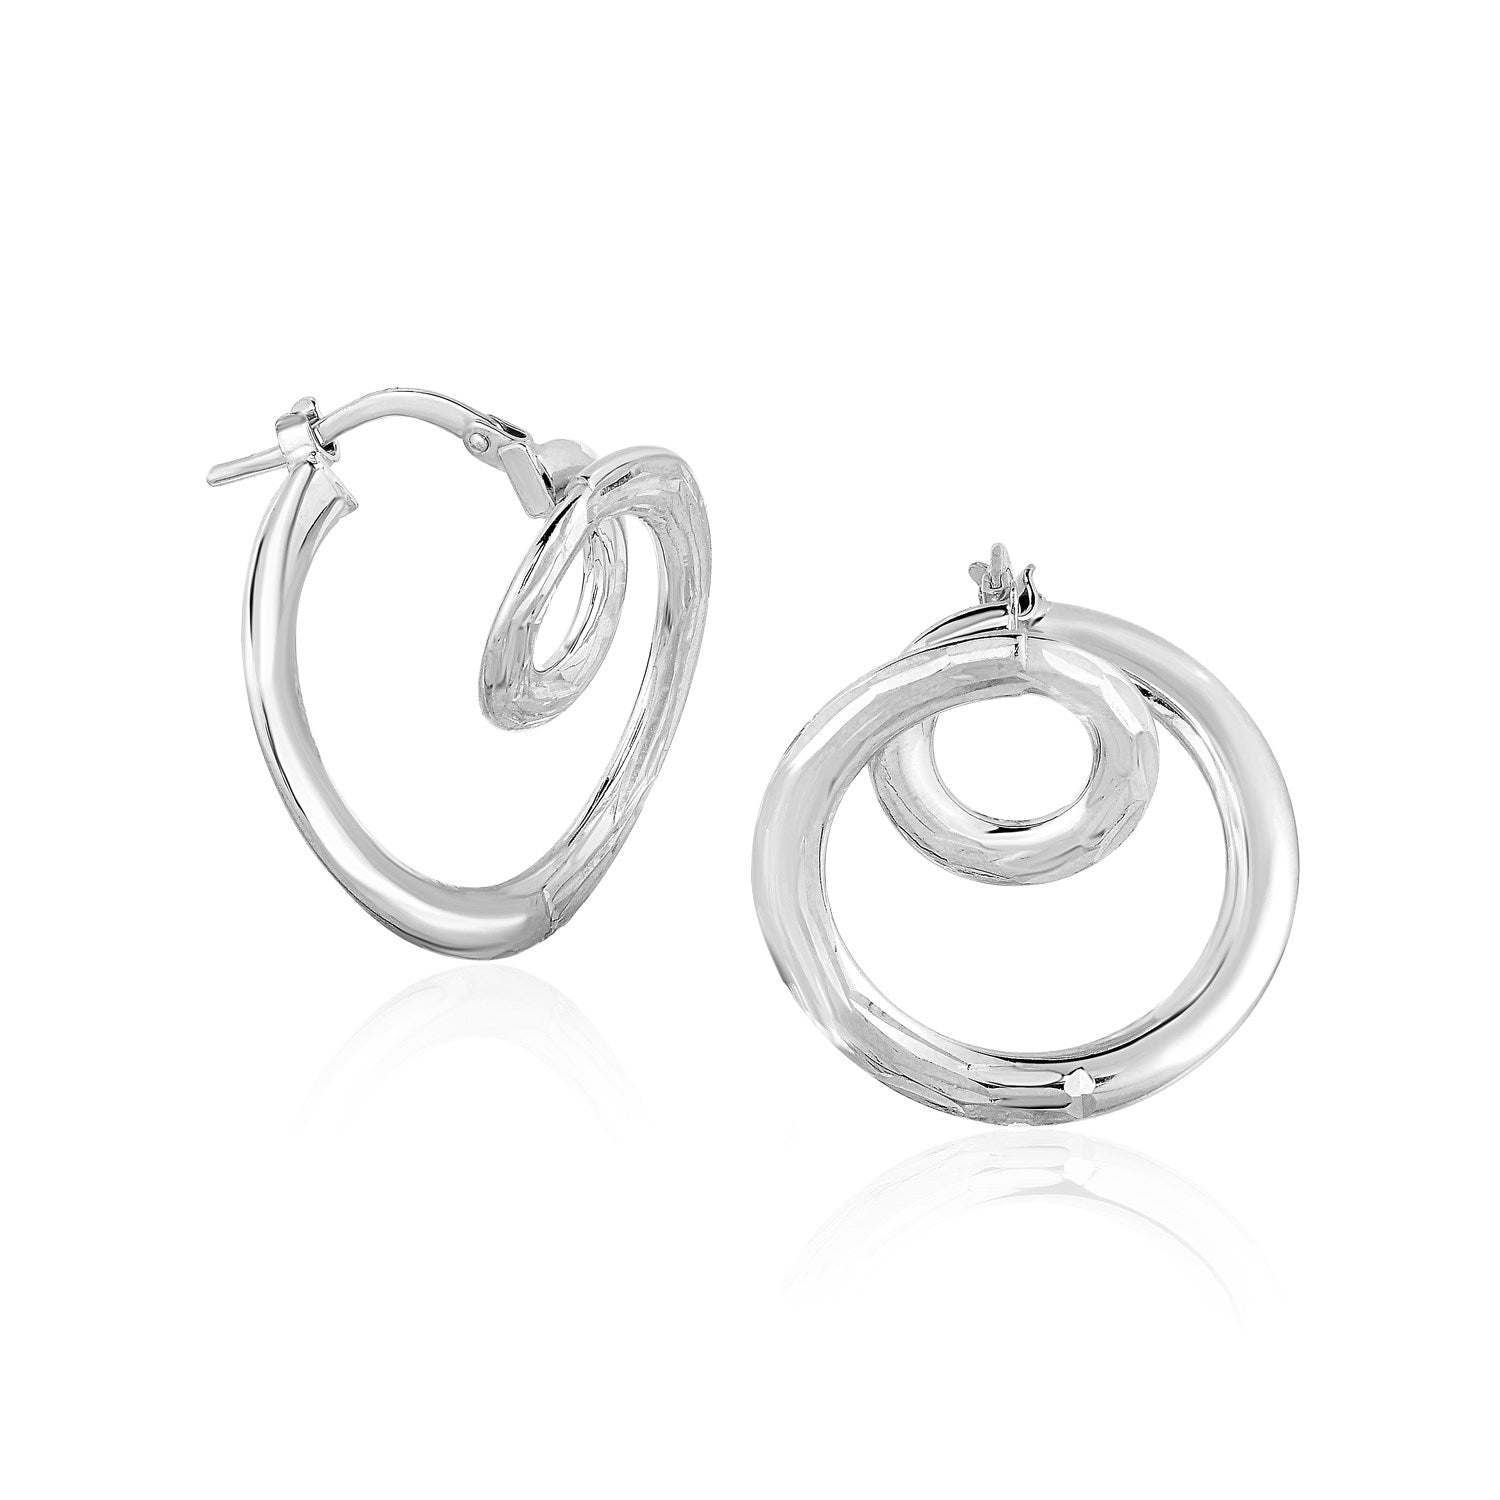 14K White Gold Textured Coil Style Hoop Earrings